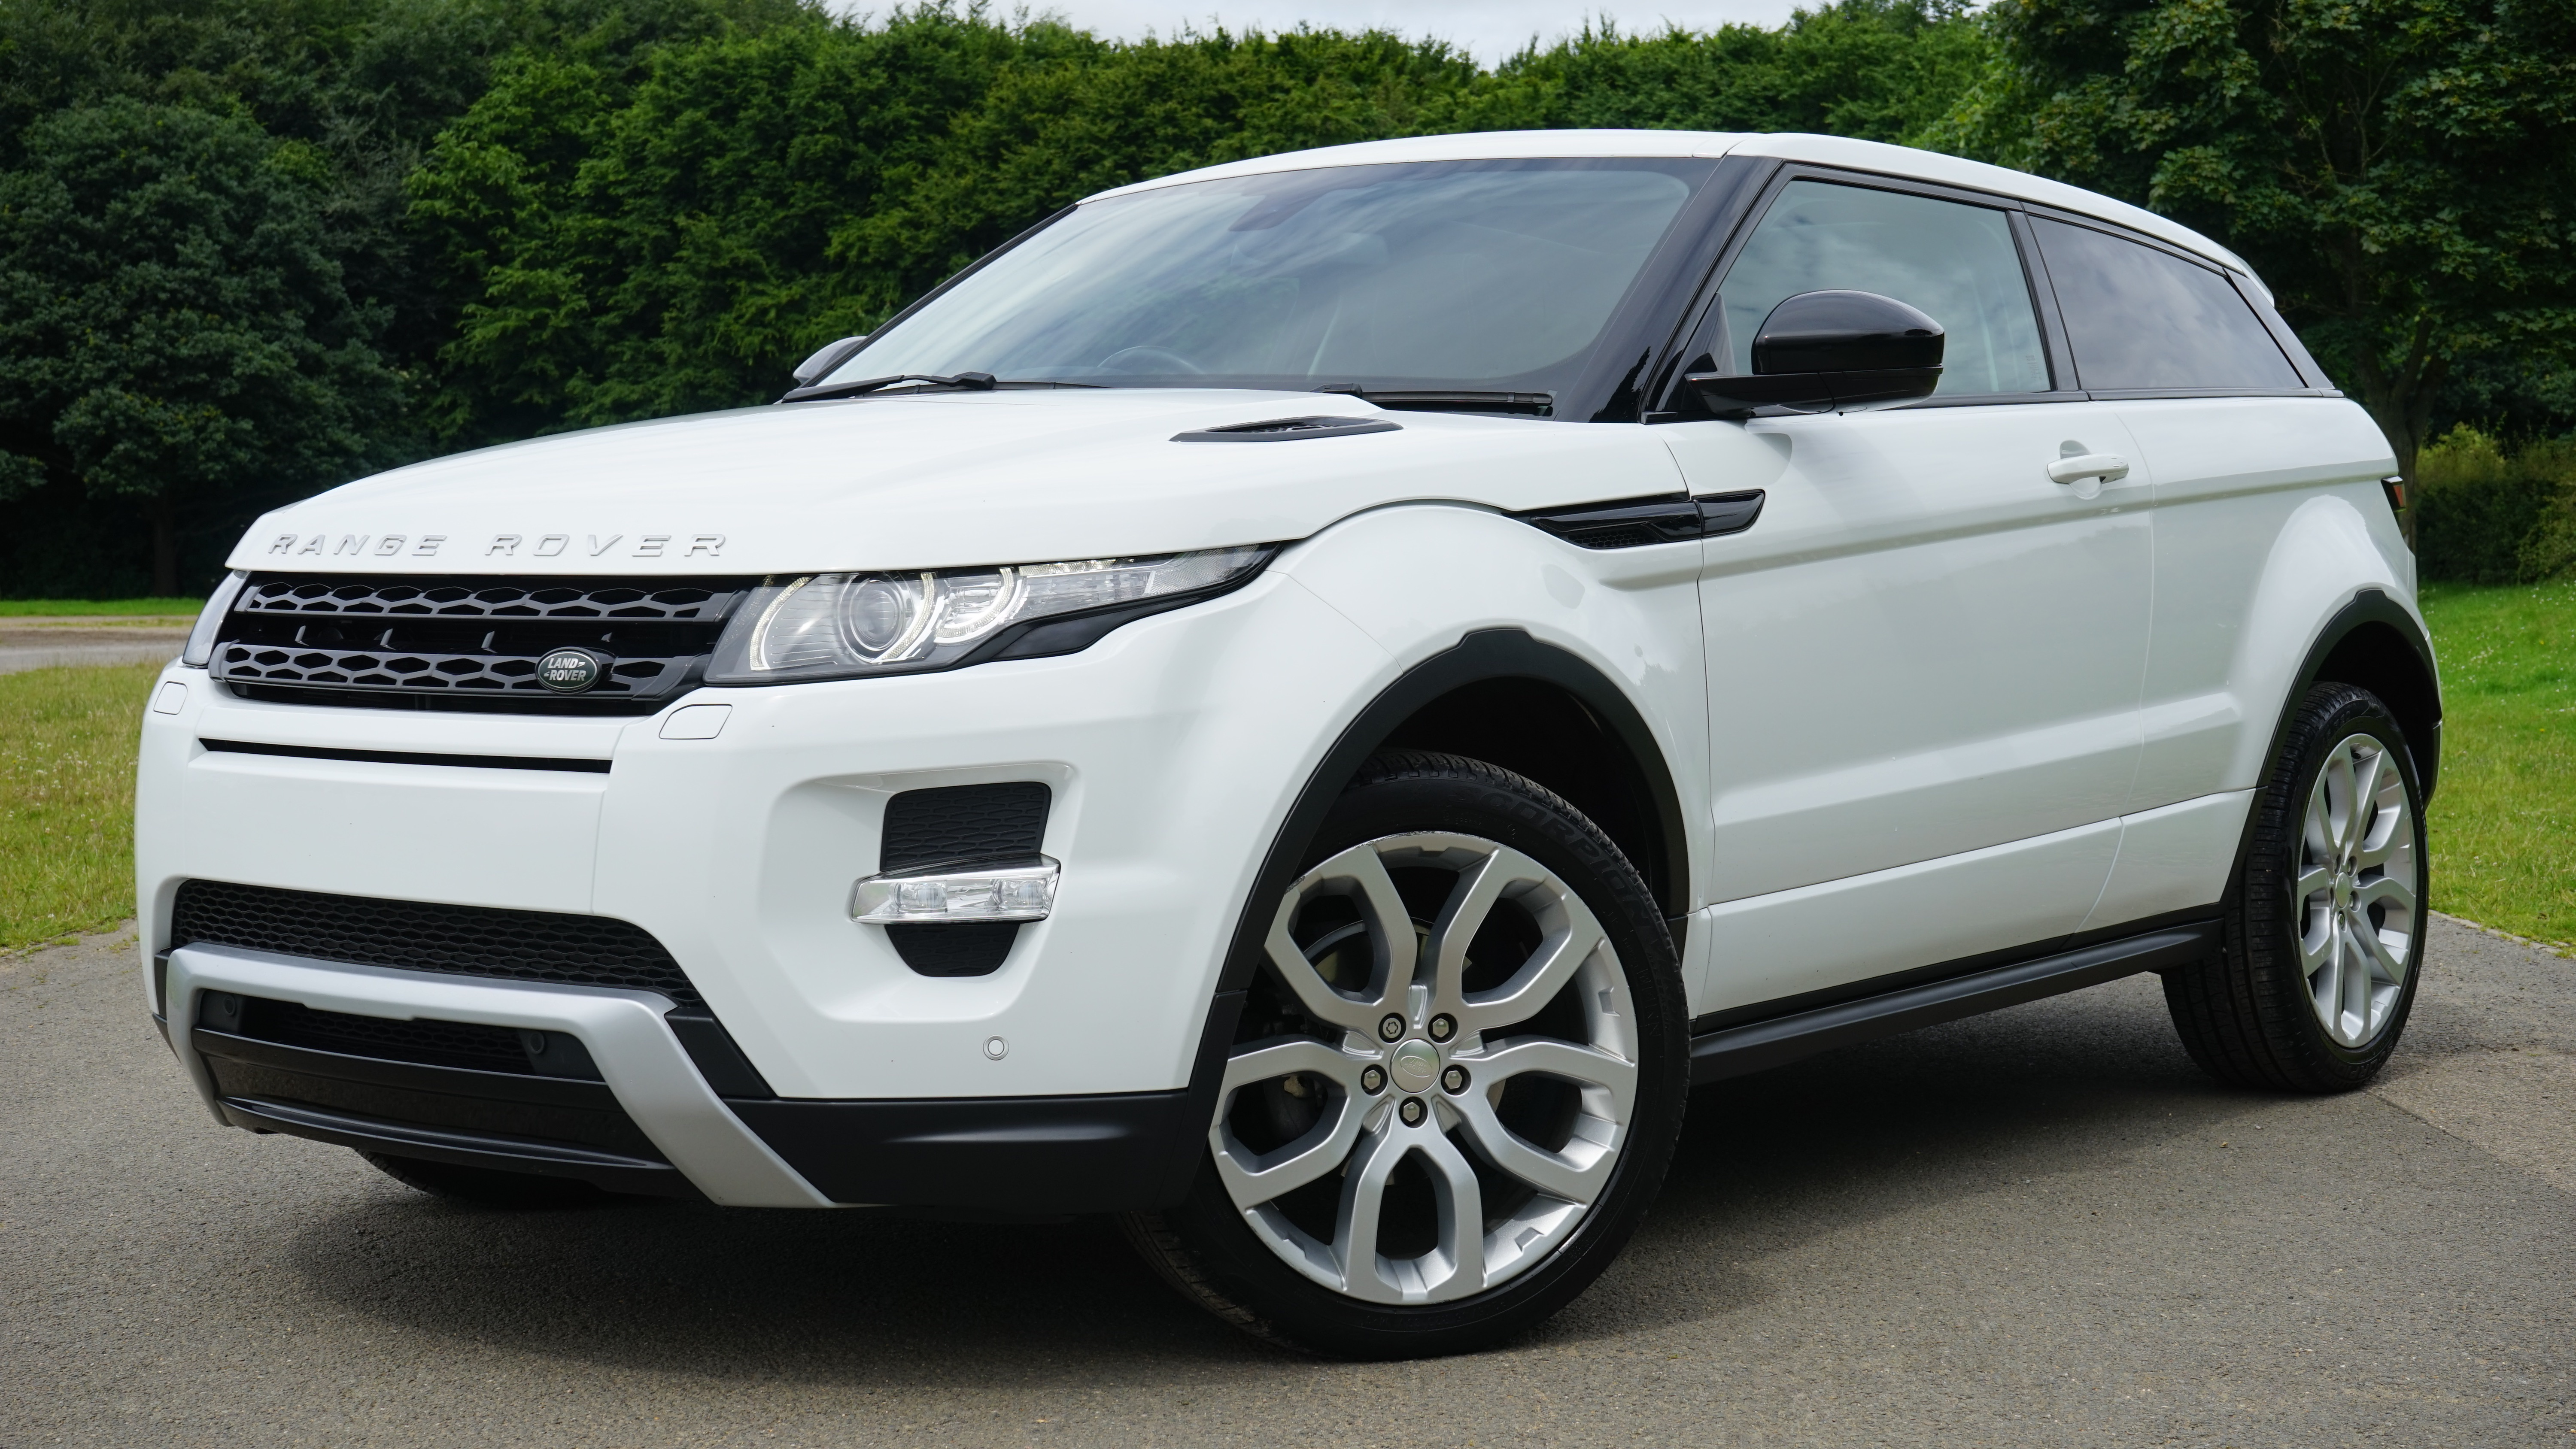 Main image for post: Matt Kay's Car of the Month… The Range Rover Evoque